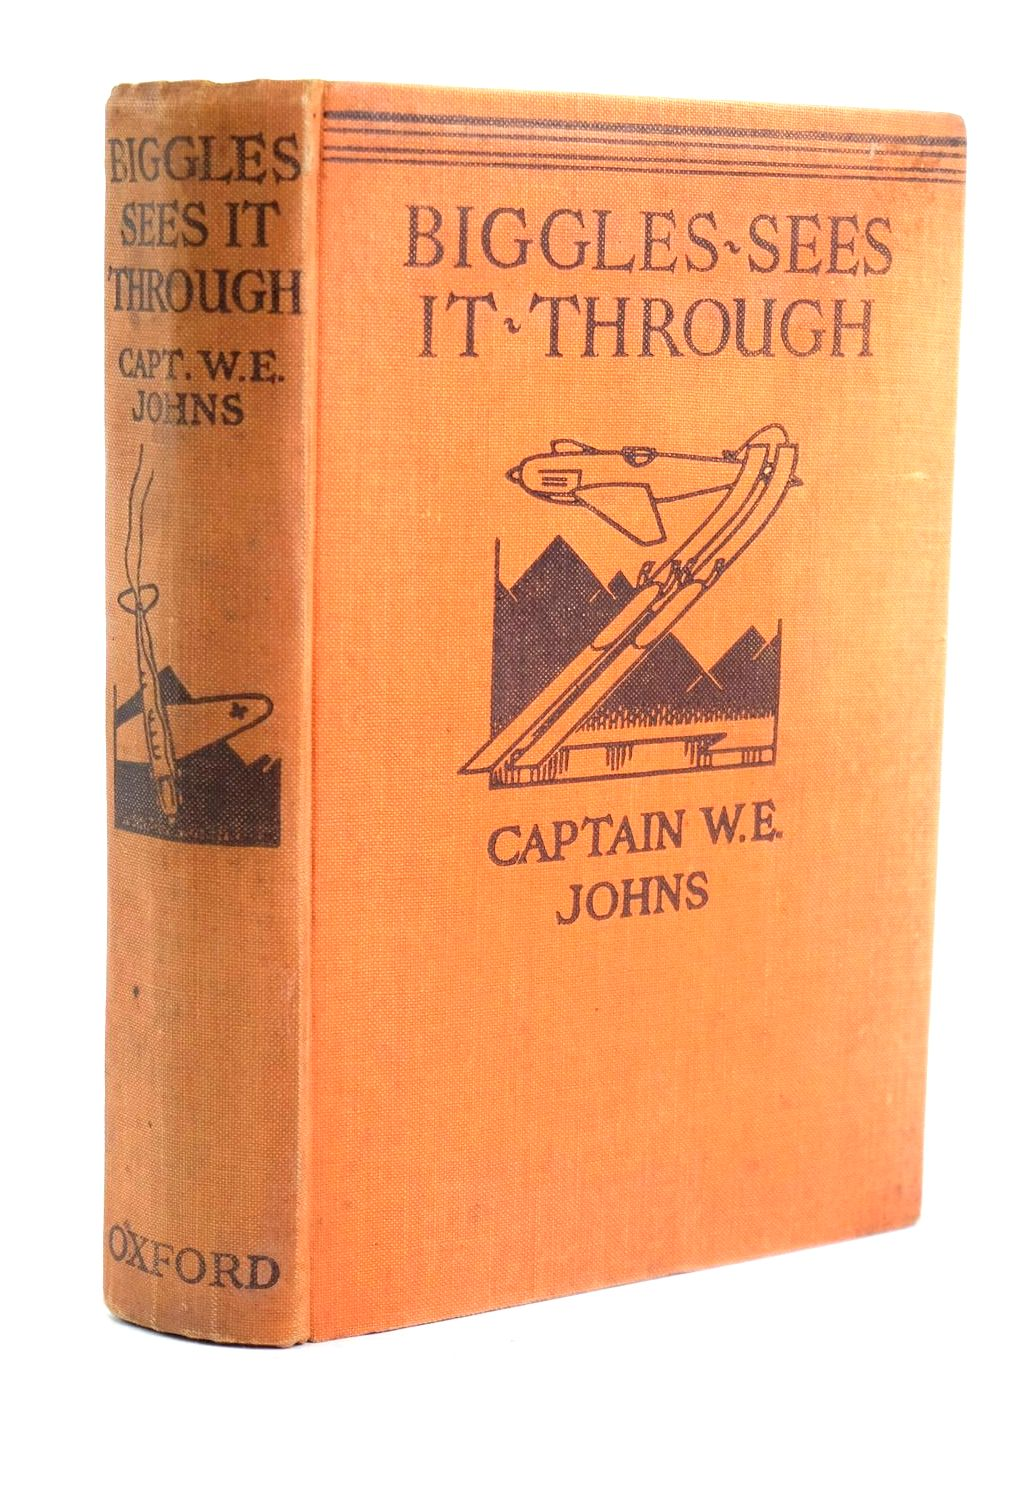 Photo of BIGGLES SEES IT THROUGH written by Johns, W.E. illustrated by Leigh, Howard Sindall, Alfred published by Oxford University Press (STOCK CODE: 1319750)  for sale by Stella & Rose's Books